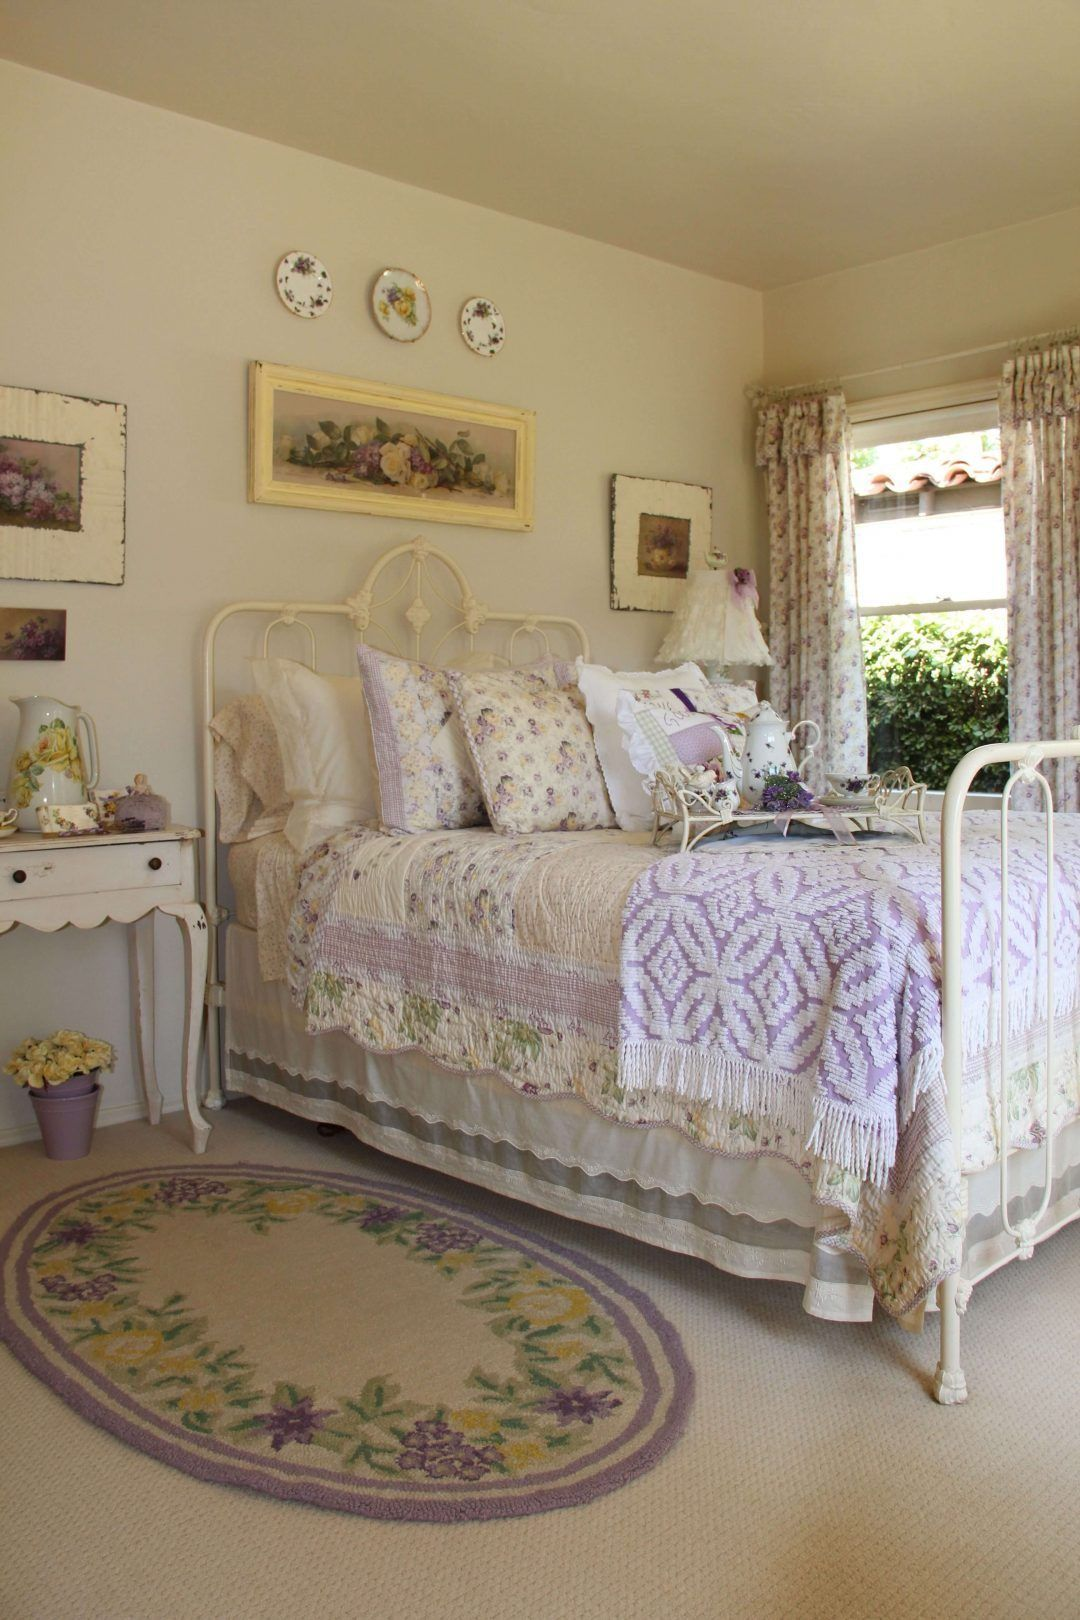 25 Fashionable Shabby Chic Bedroom (All Are Stylish!) - Q1